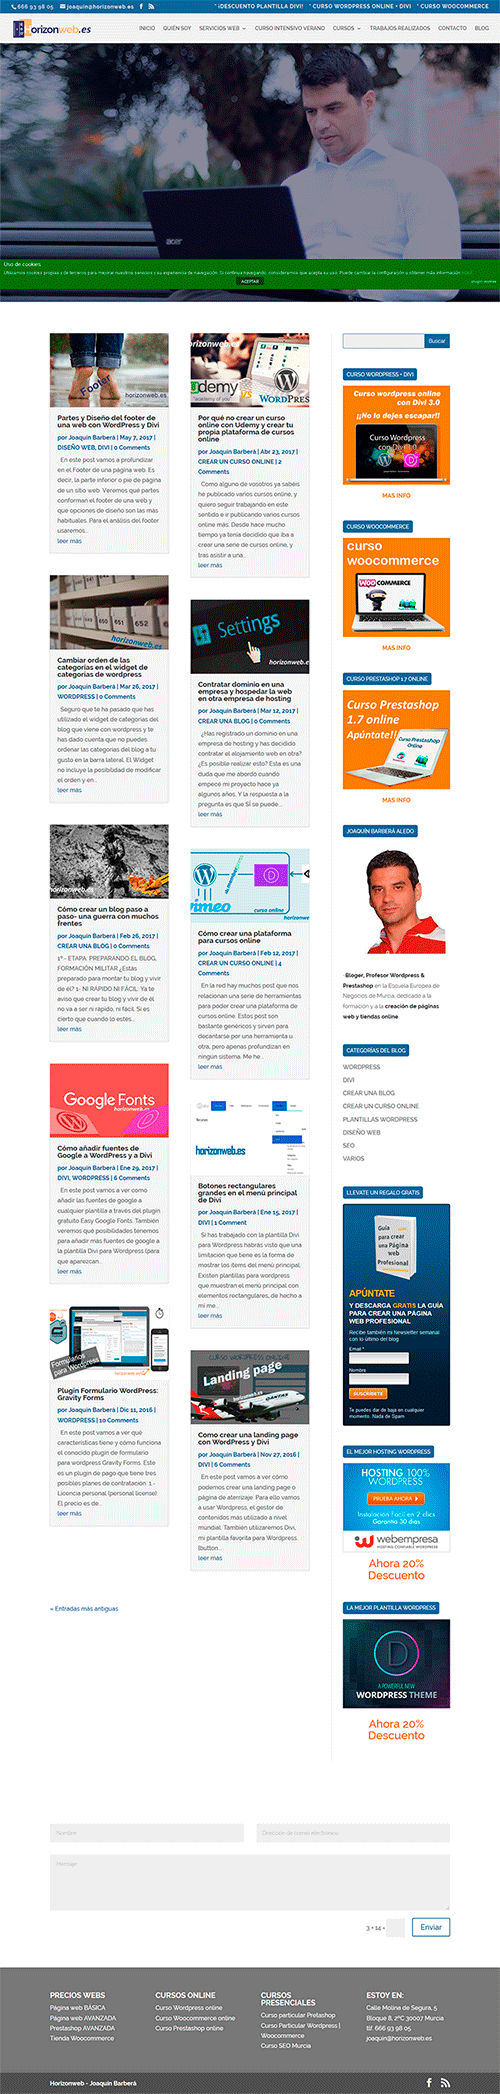 Blog realizado con Divi y wordpress